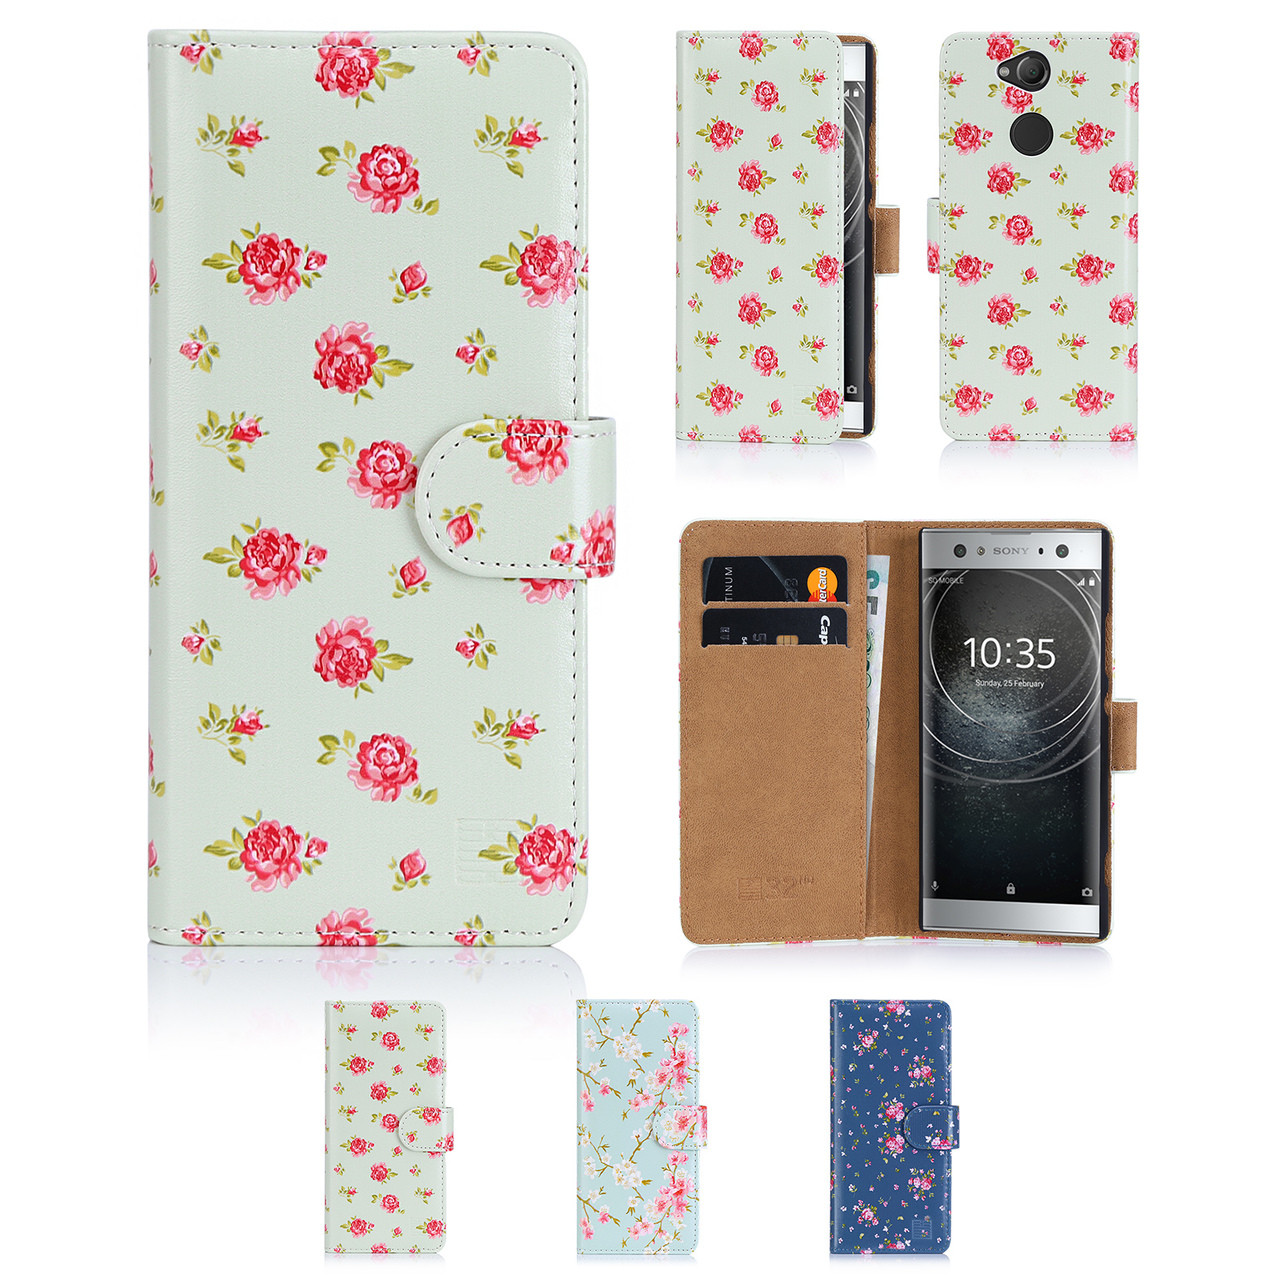 sports shoes 50eac b48d4 Sony Xperia XA2 Ultra PU Leather Floral Design Book Wallet Case